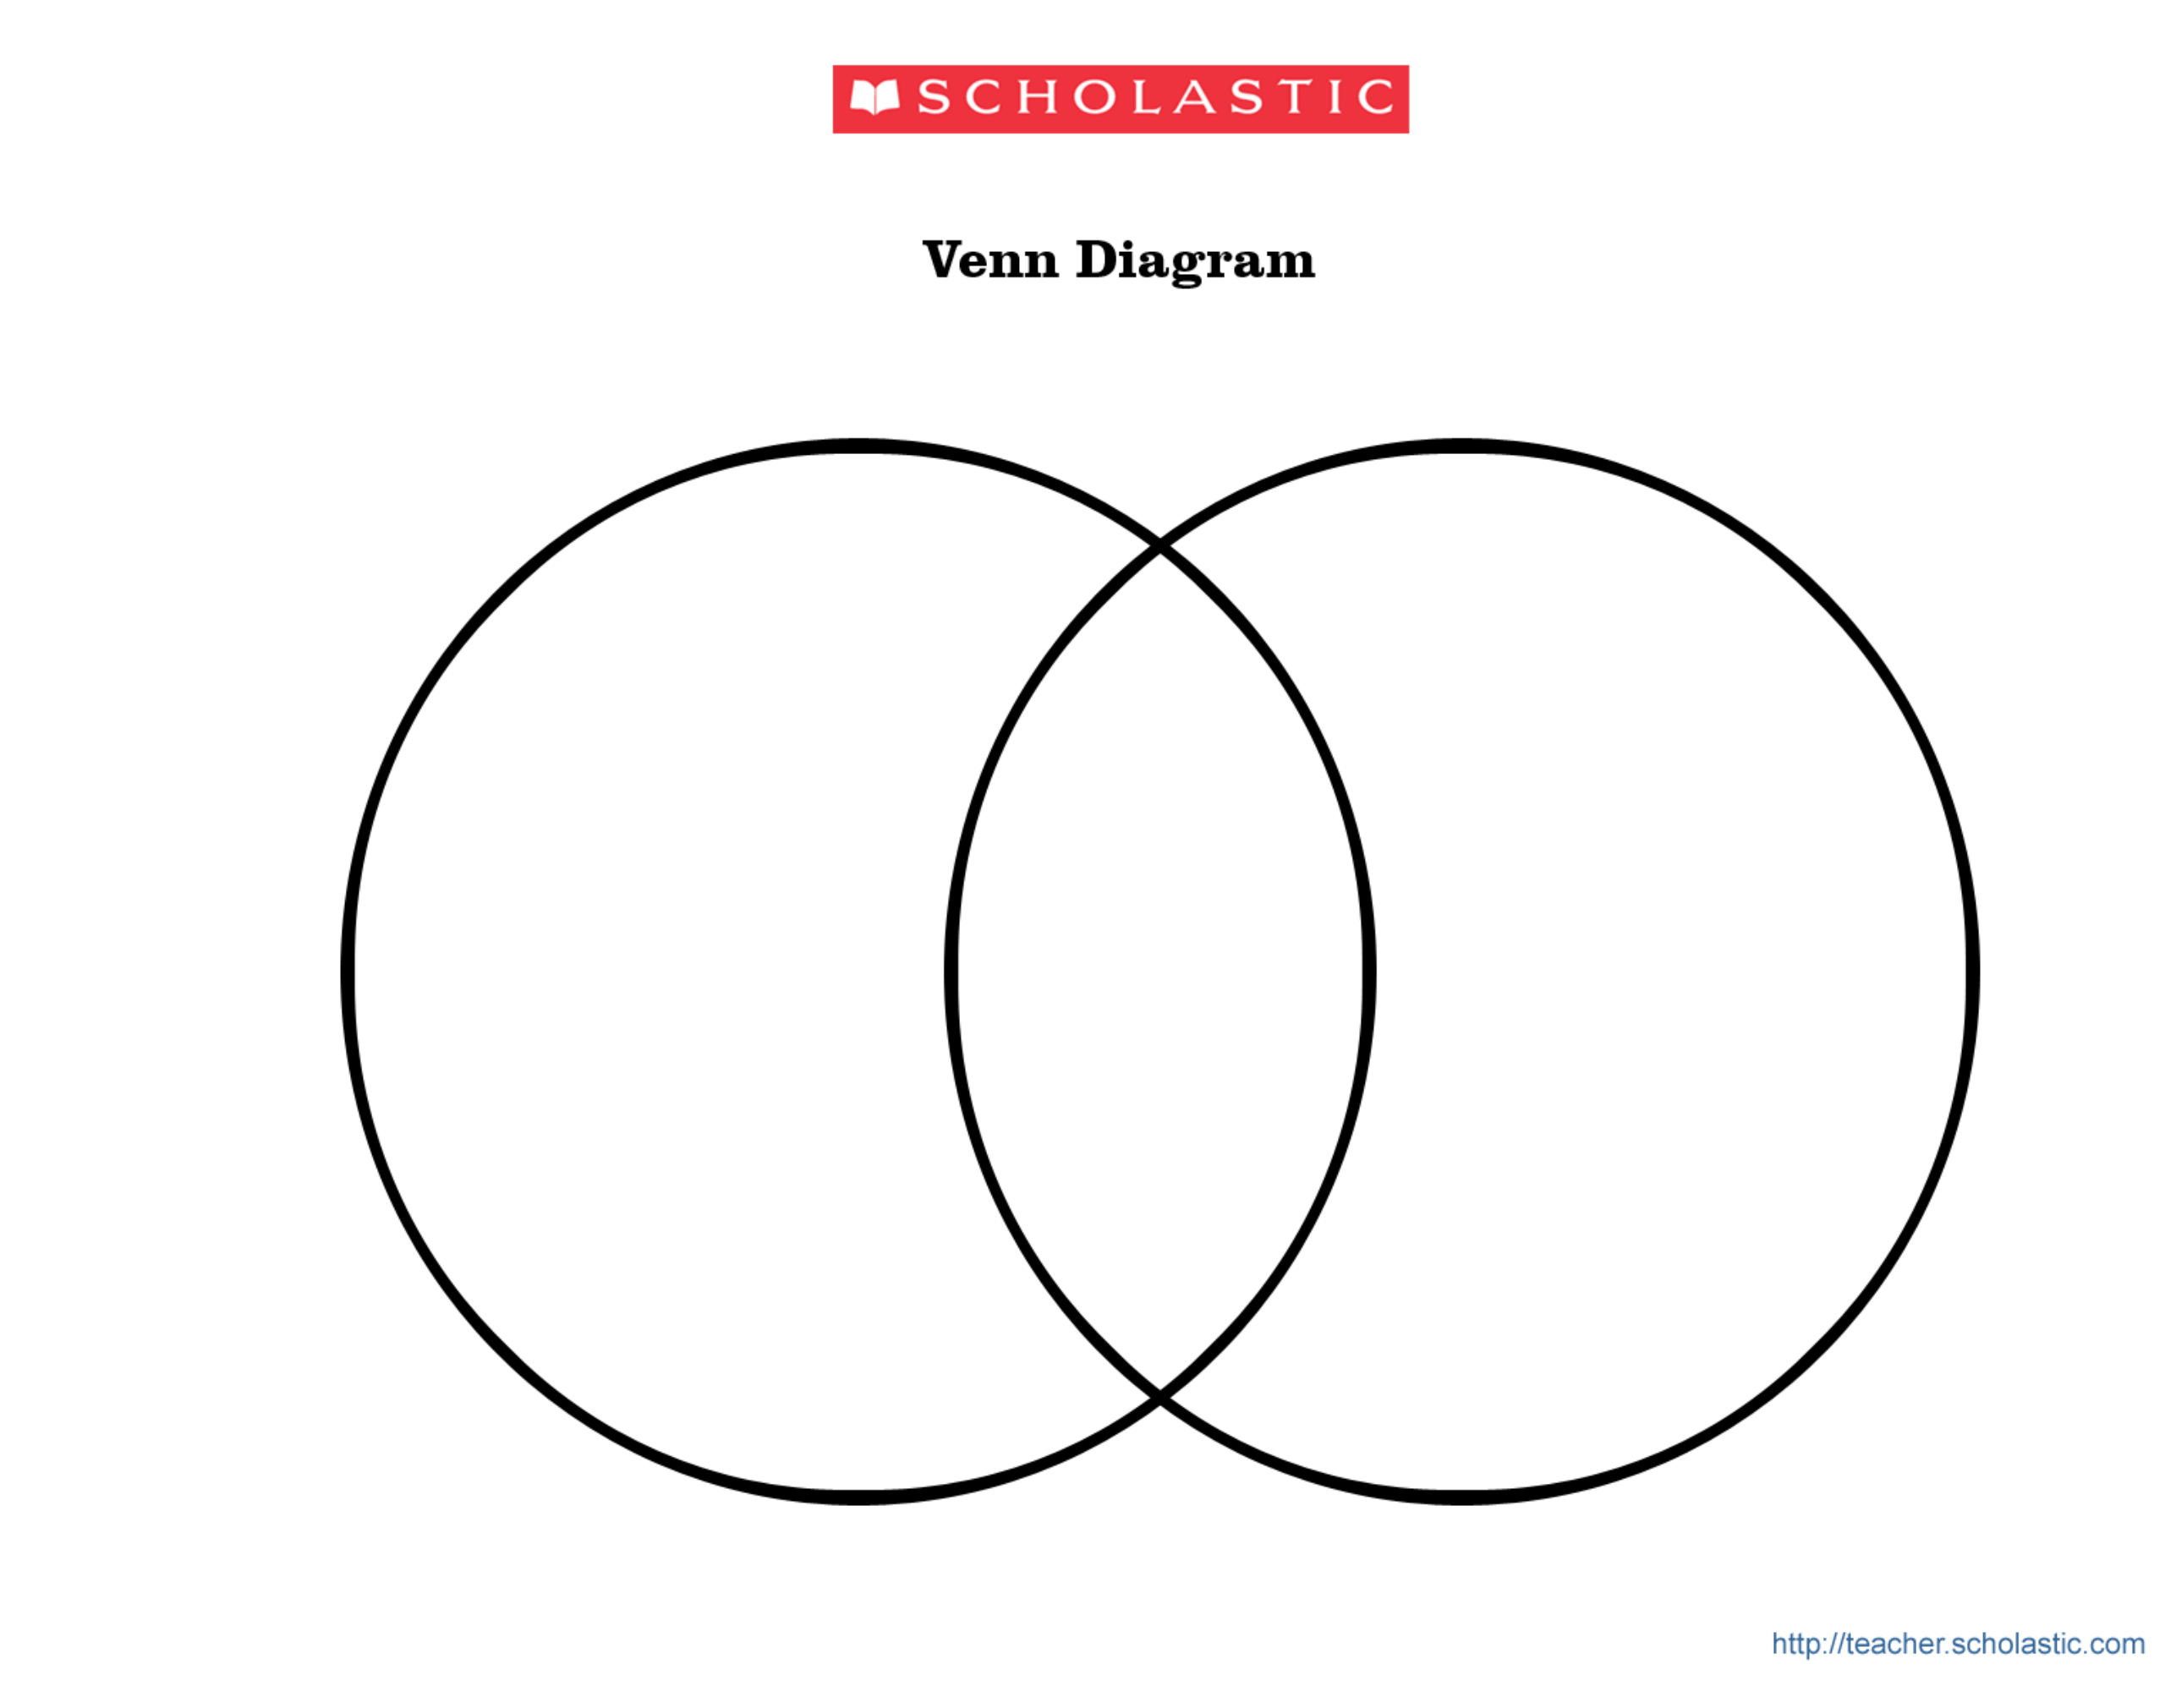 Blank Venn Diagram Template Free Download